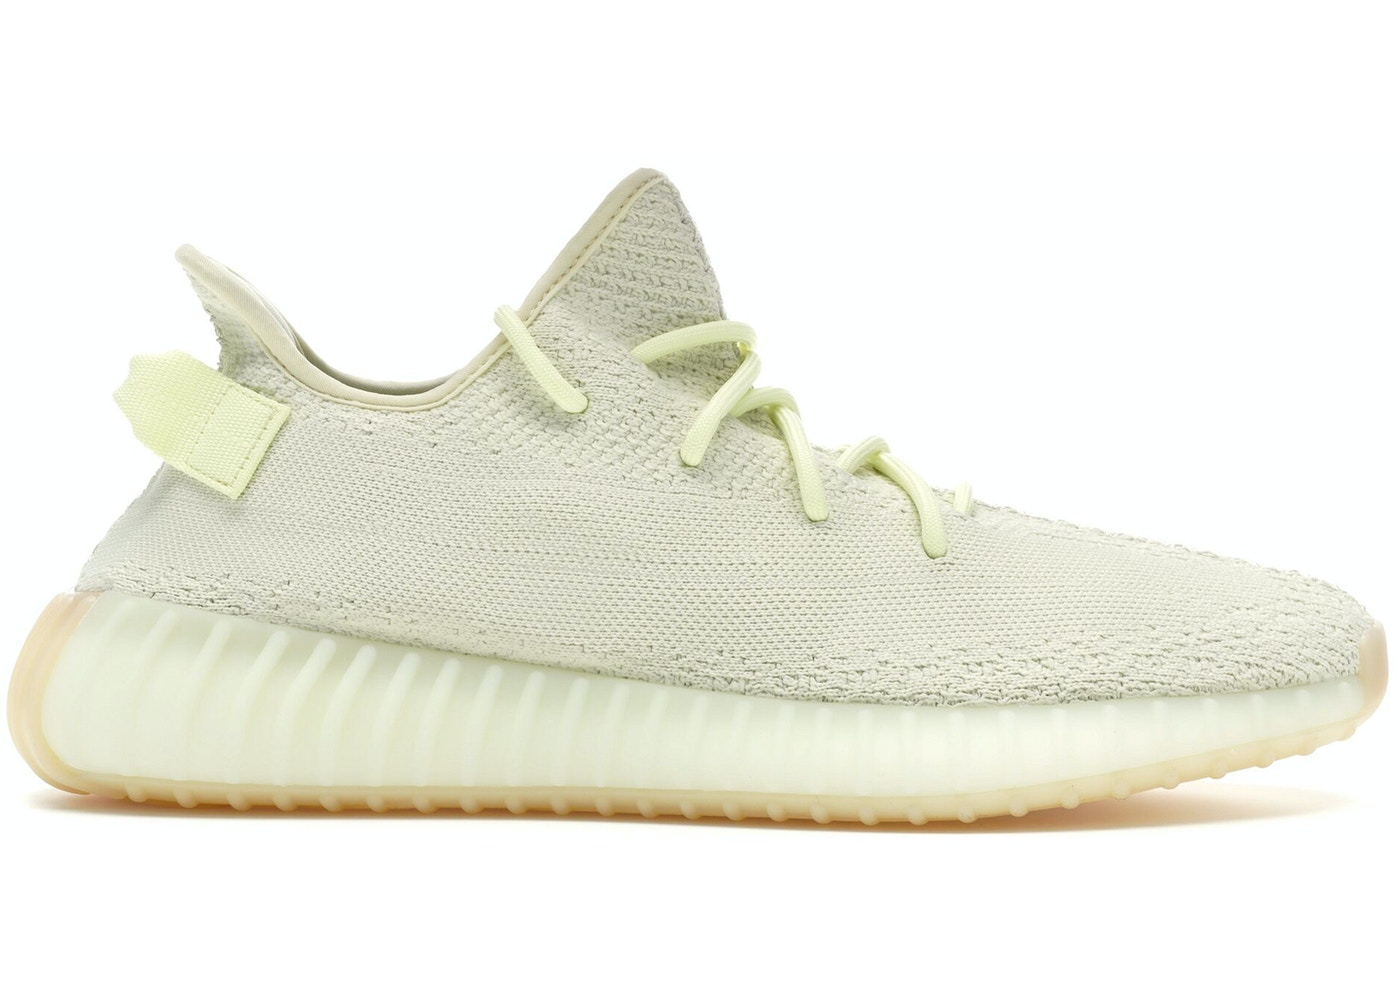 low priced 3e506 dbb42 adidas Yeezy Boost 350 V2 Butter